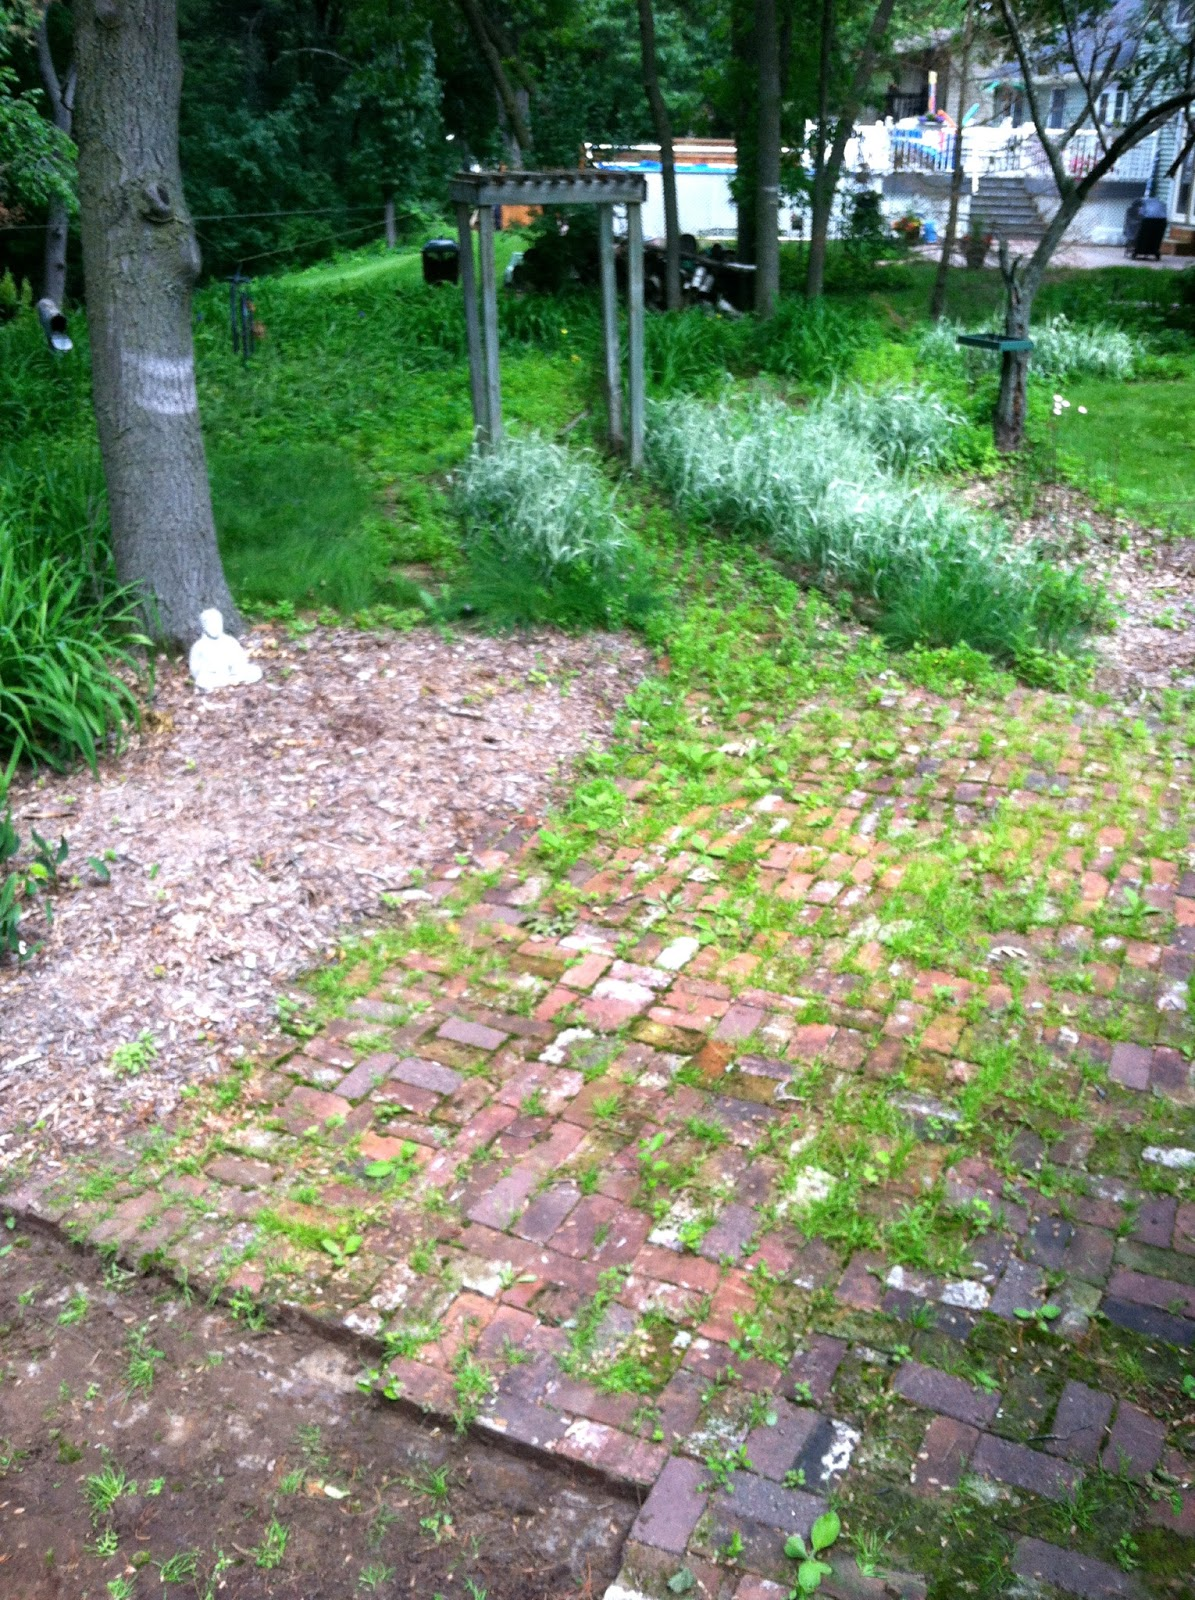 Backyard Bonfire Band : We started pulling up the bricks, so that we can power wash them and